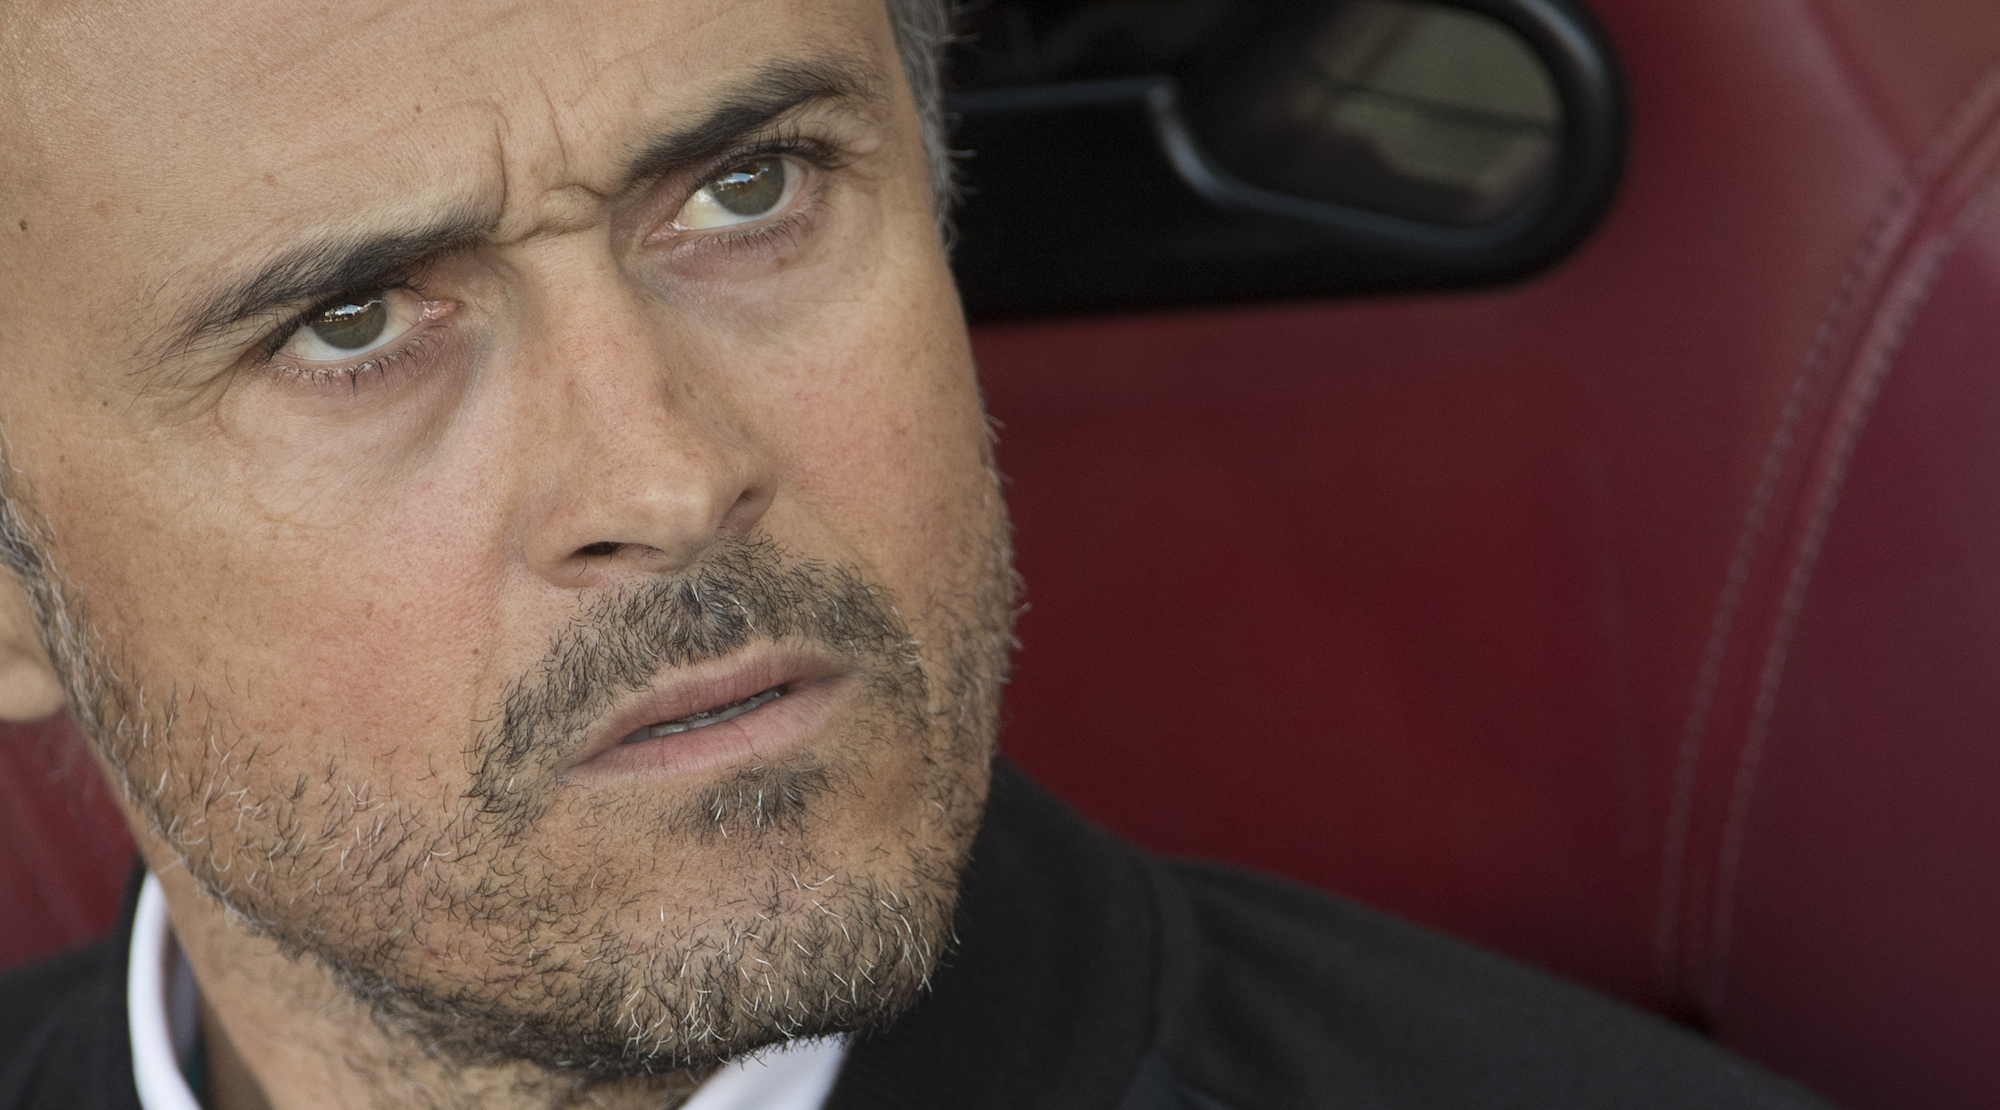 Barcelona's coach Luis Enrique looks on during the Spanish league football match Club Atletico de Madrid vs FC Barcelona at the Vicente Calderon stadium in Madrid on February 26, 2017. / AFP / CURTO DE LA TORRE (Photo credit should read CURTO DE LA TORRE/AFP/Getty Images)